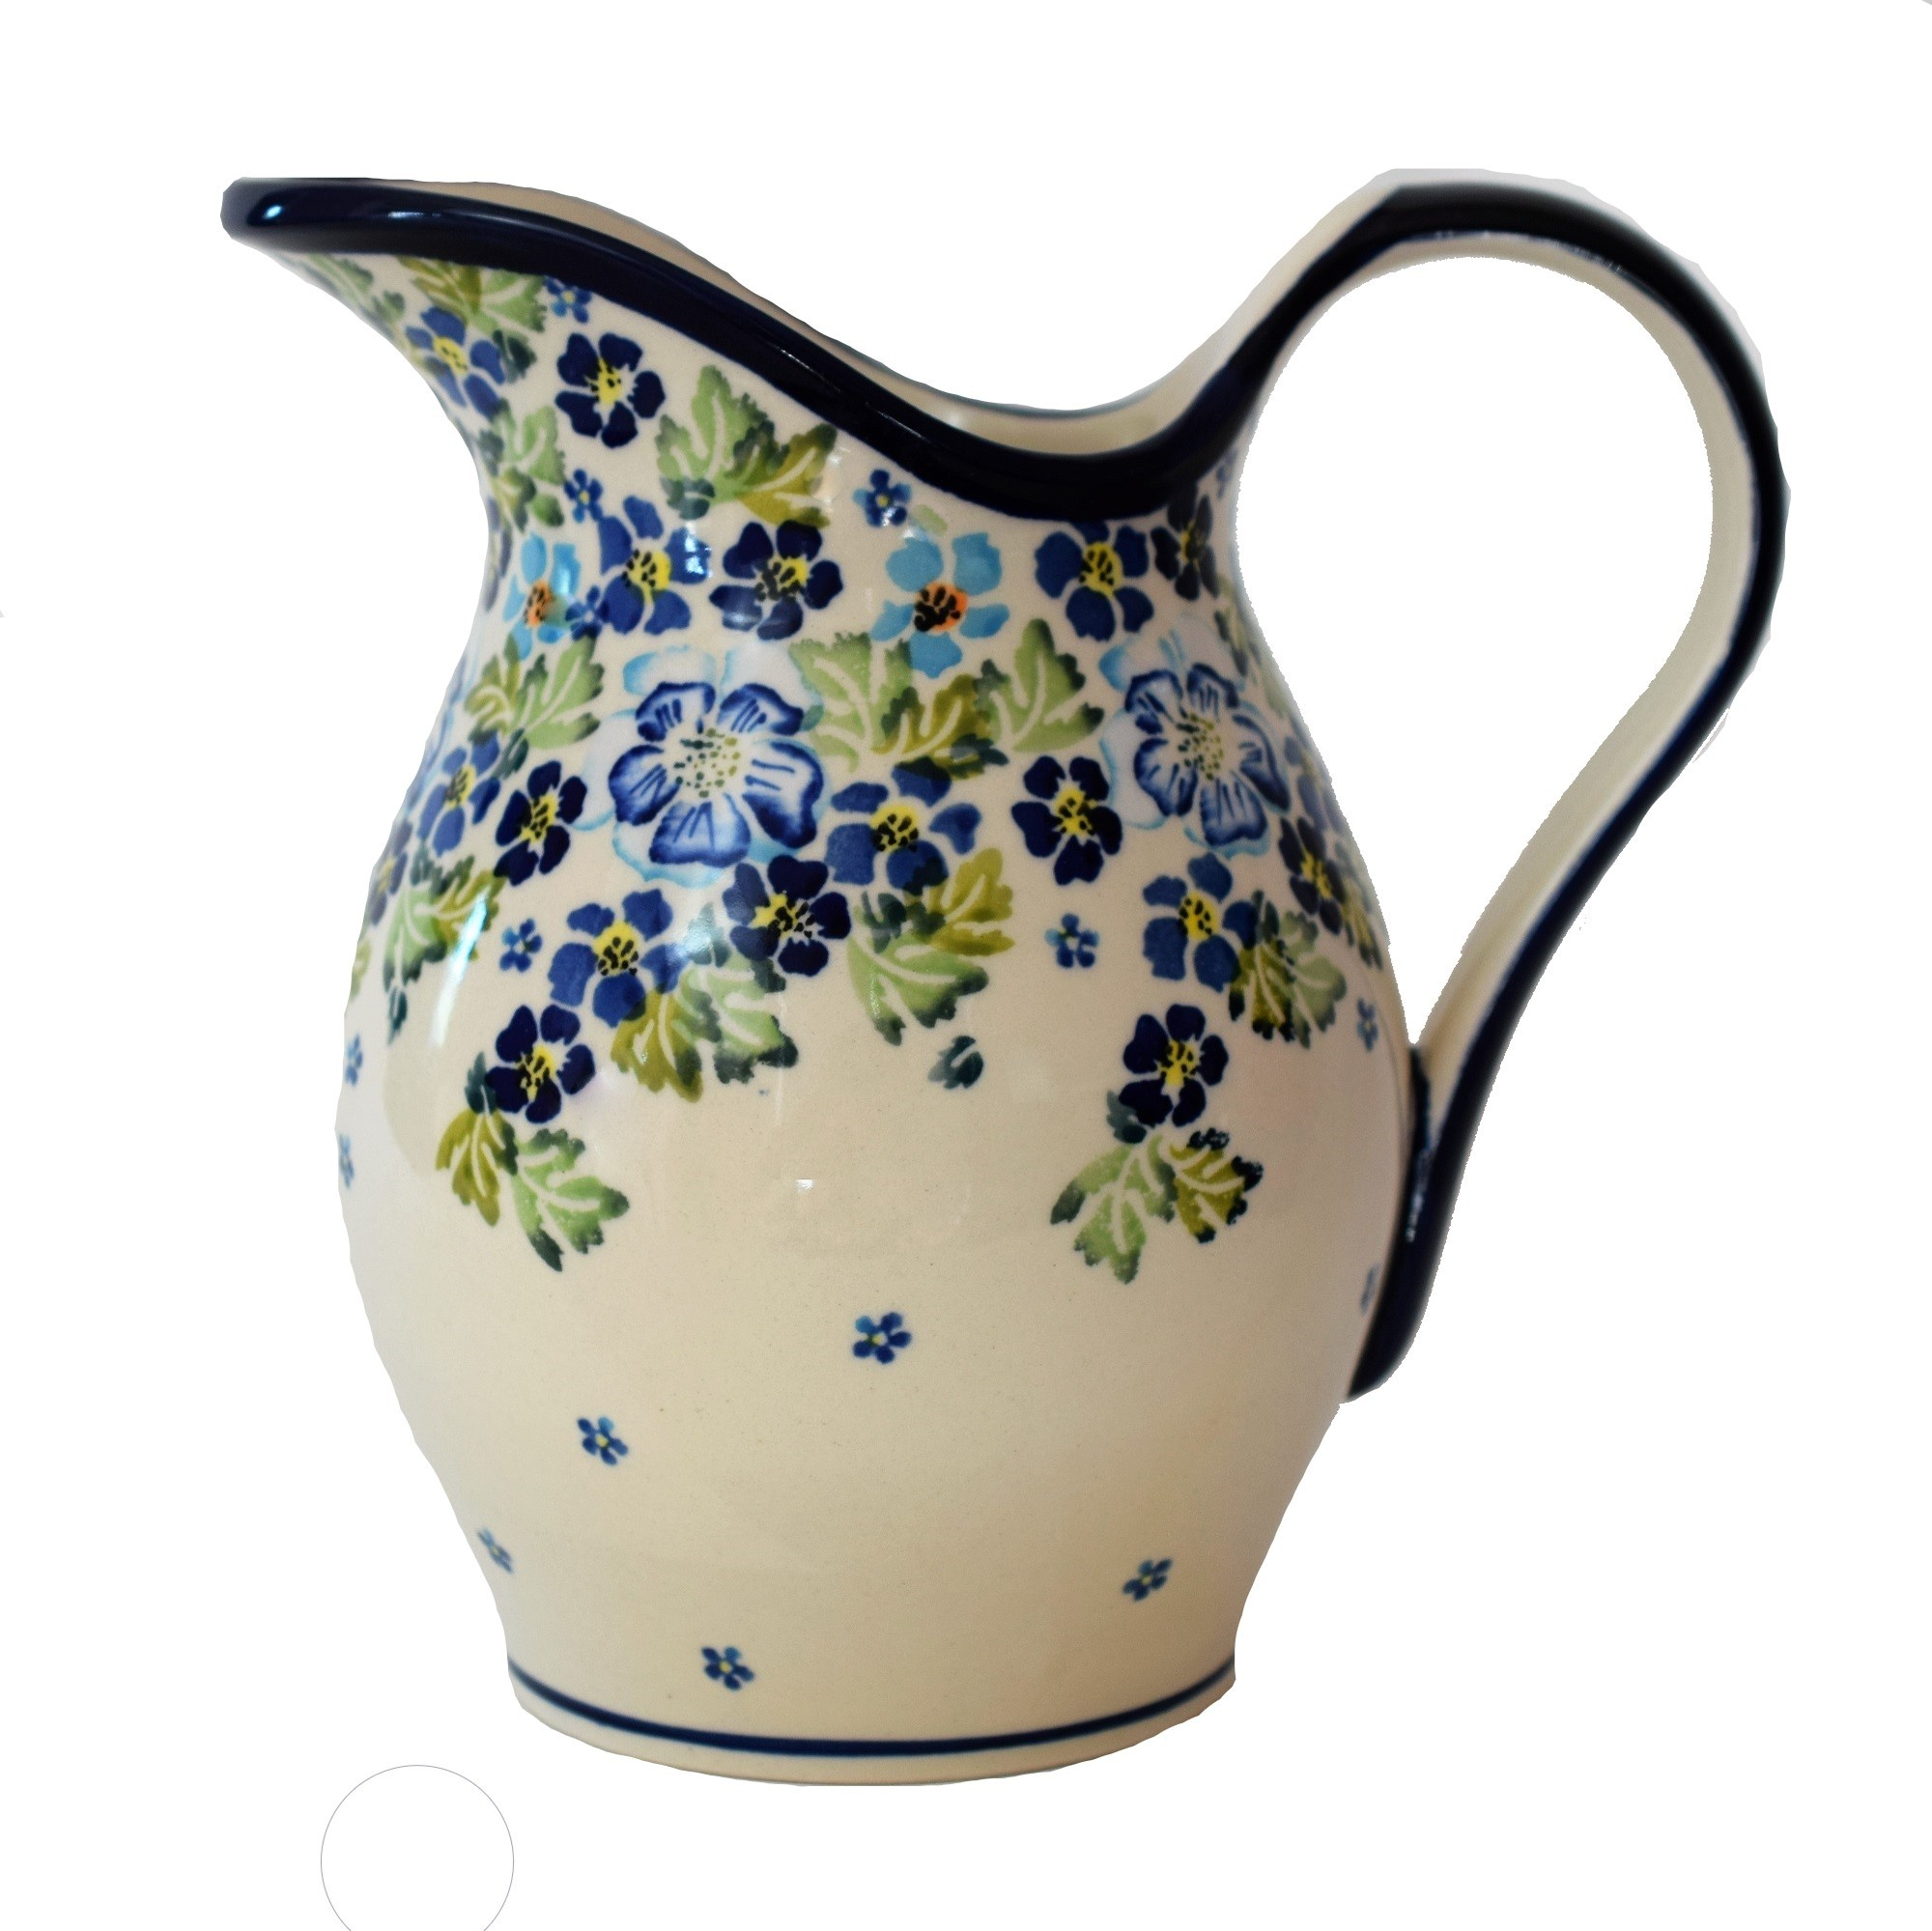 Pottery Avenue 2qrt Stoneware Pitcher - DU207 True Blues